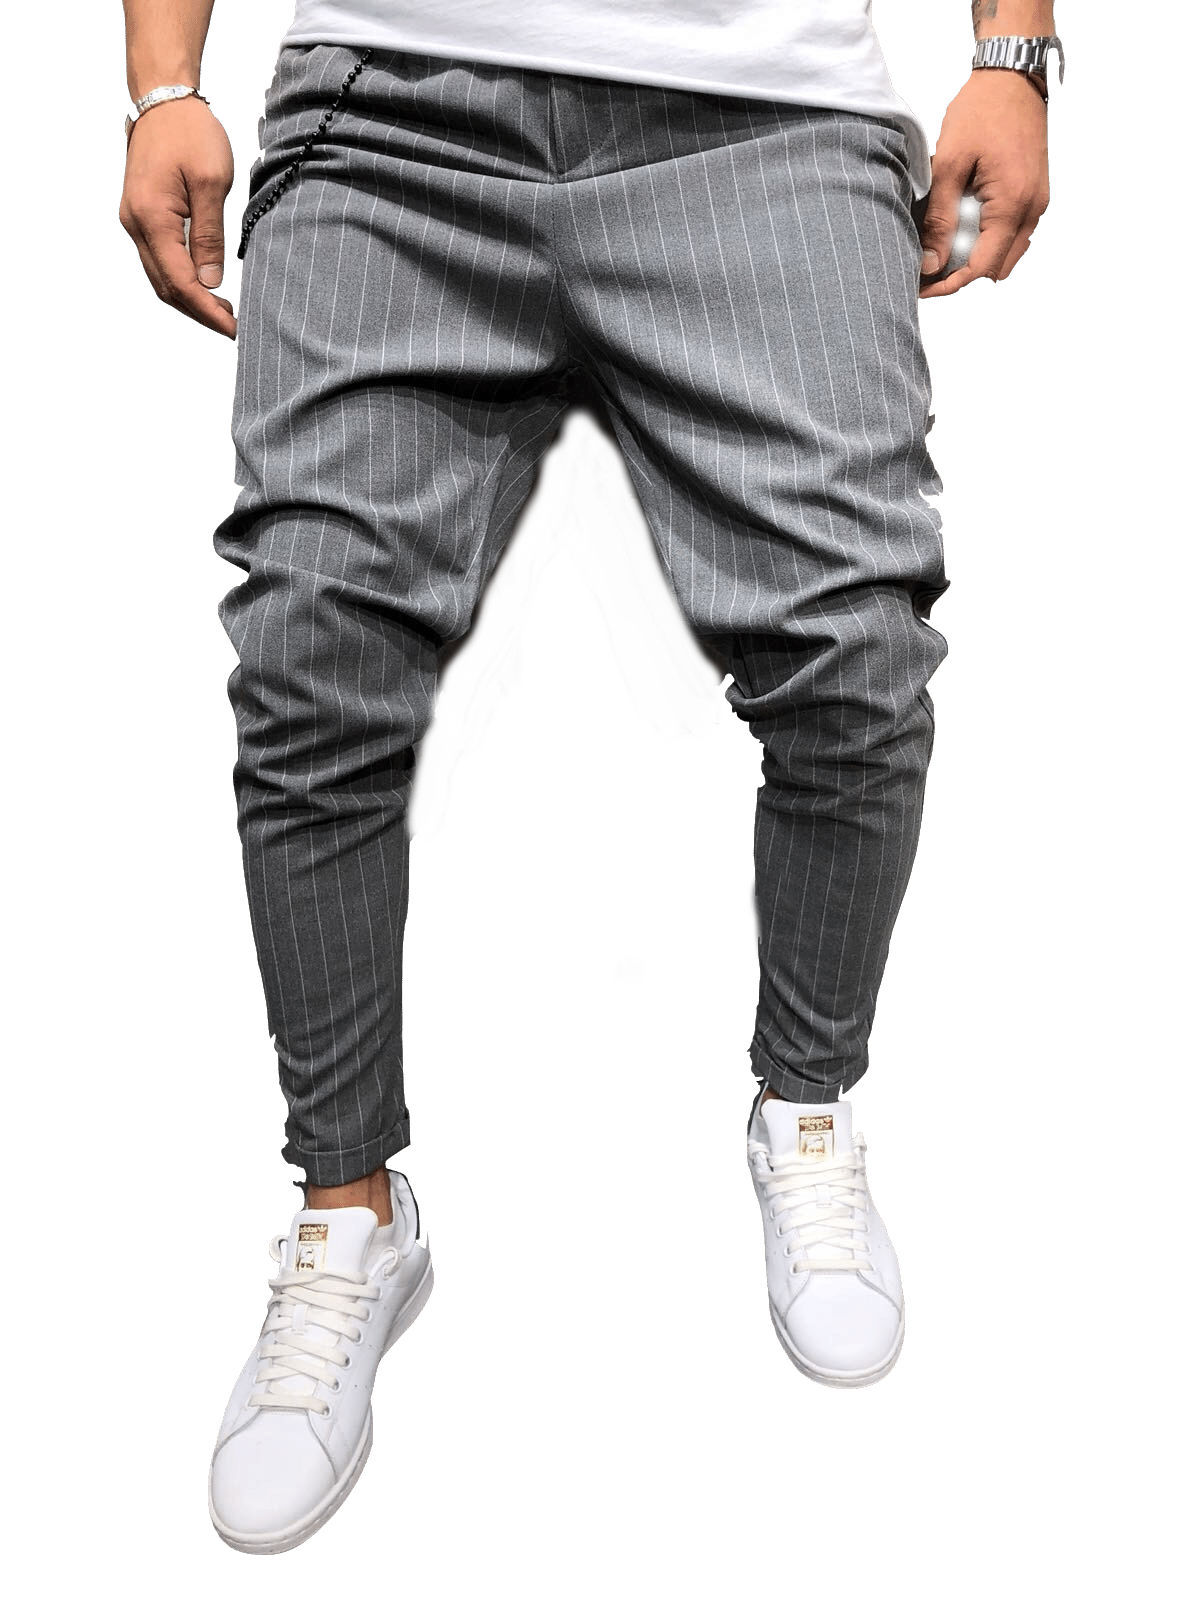 H141086dc6f934720b807e45730706f5ac Spring Autumn Casual Men Sweat Pants Male Sportswear Casual Trousers Straight Pants Hip Hop High Street Trousers Pants Joggers